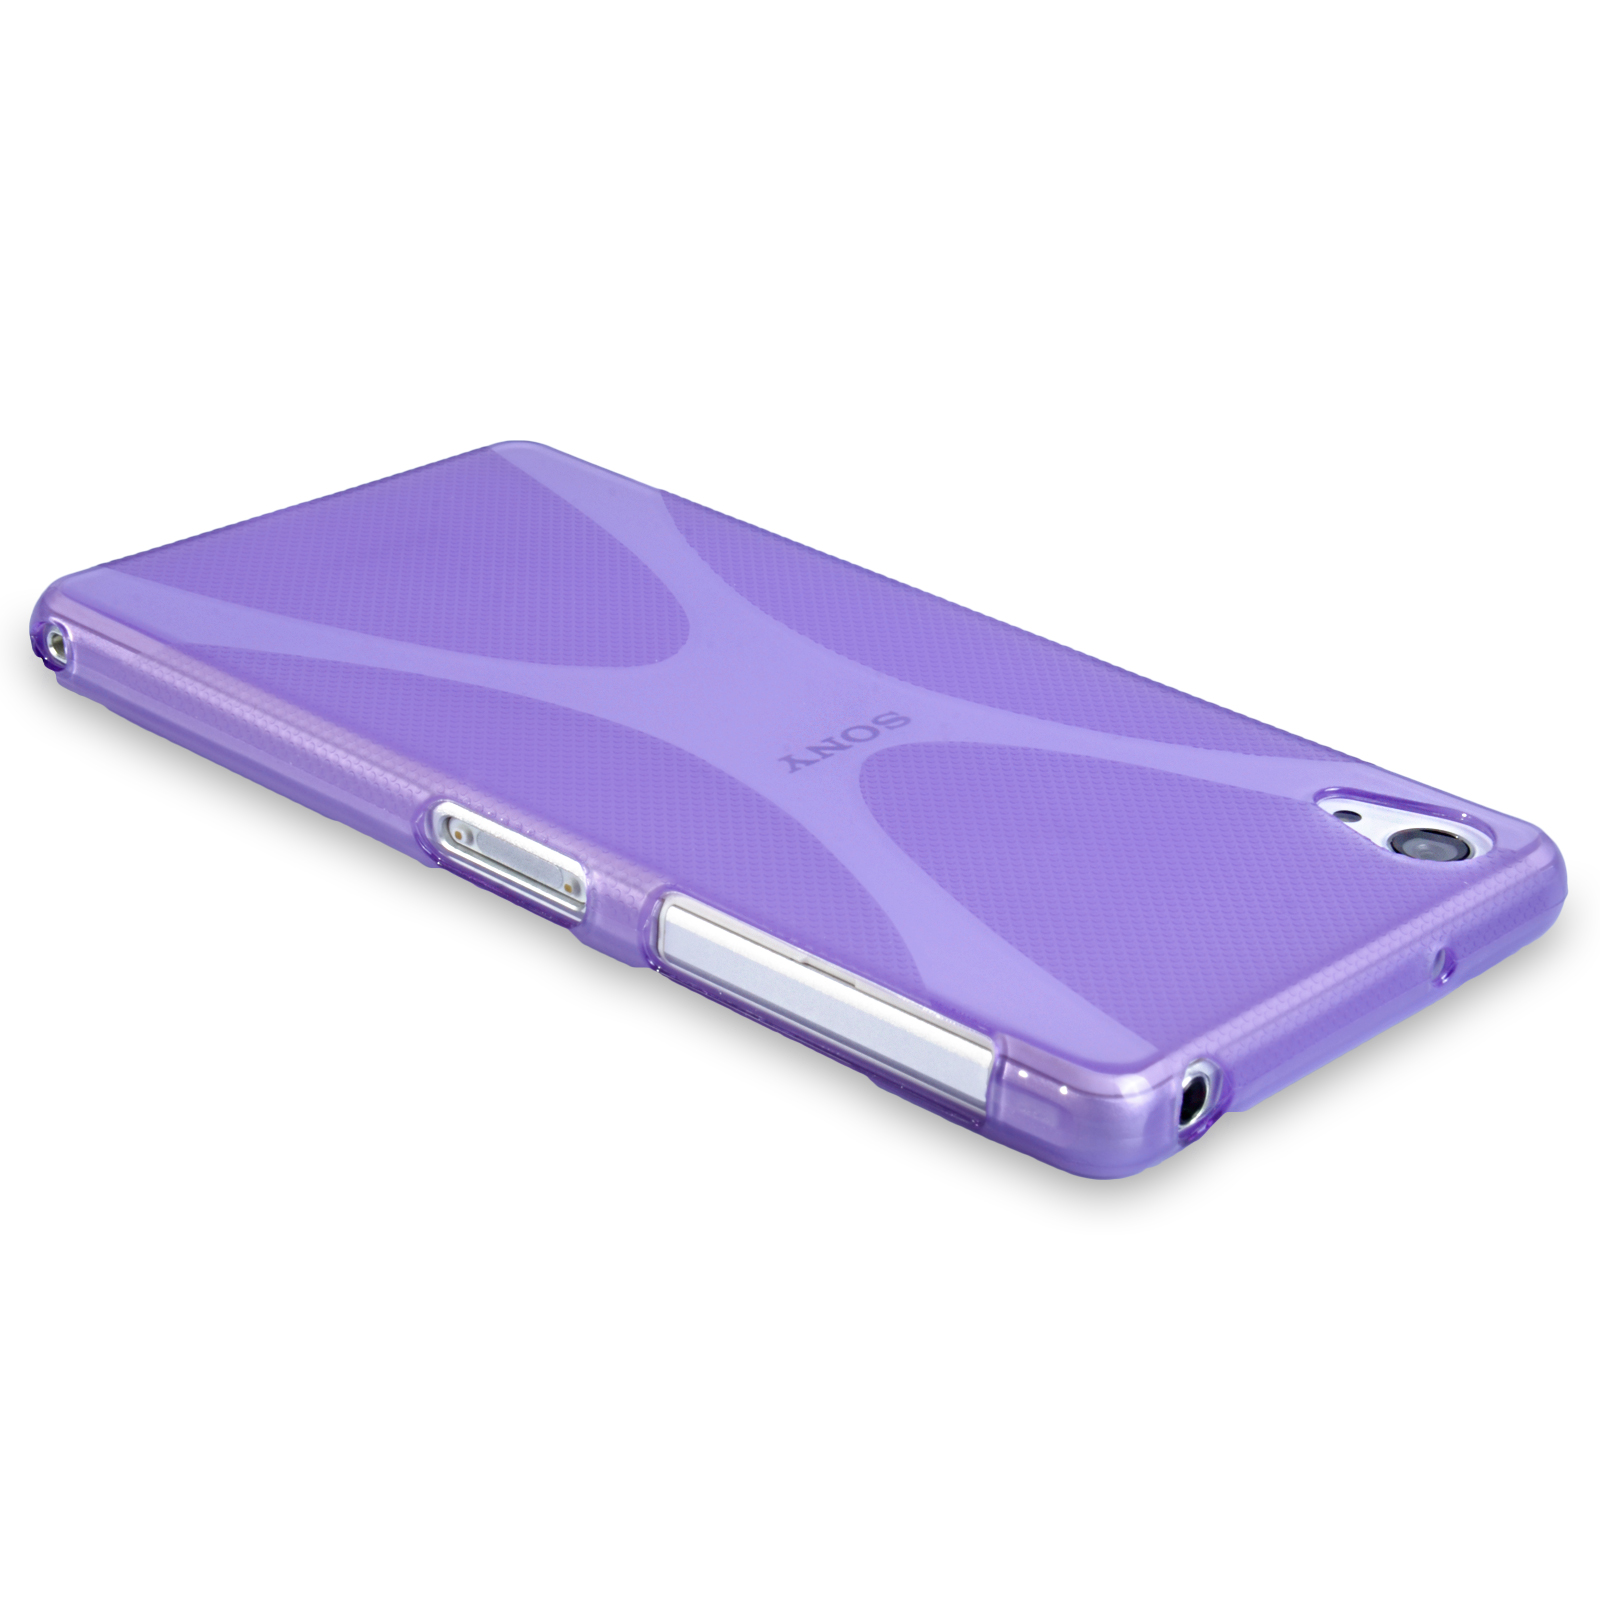 YouSave Accessories Sony Xperia Z2 Silicone Gel X-Line Case - Purple